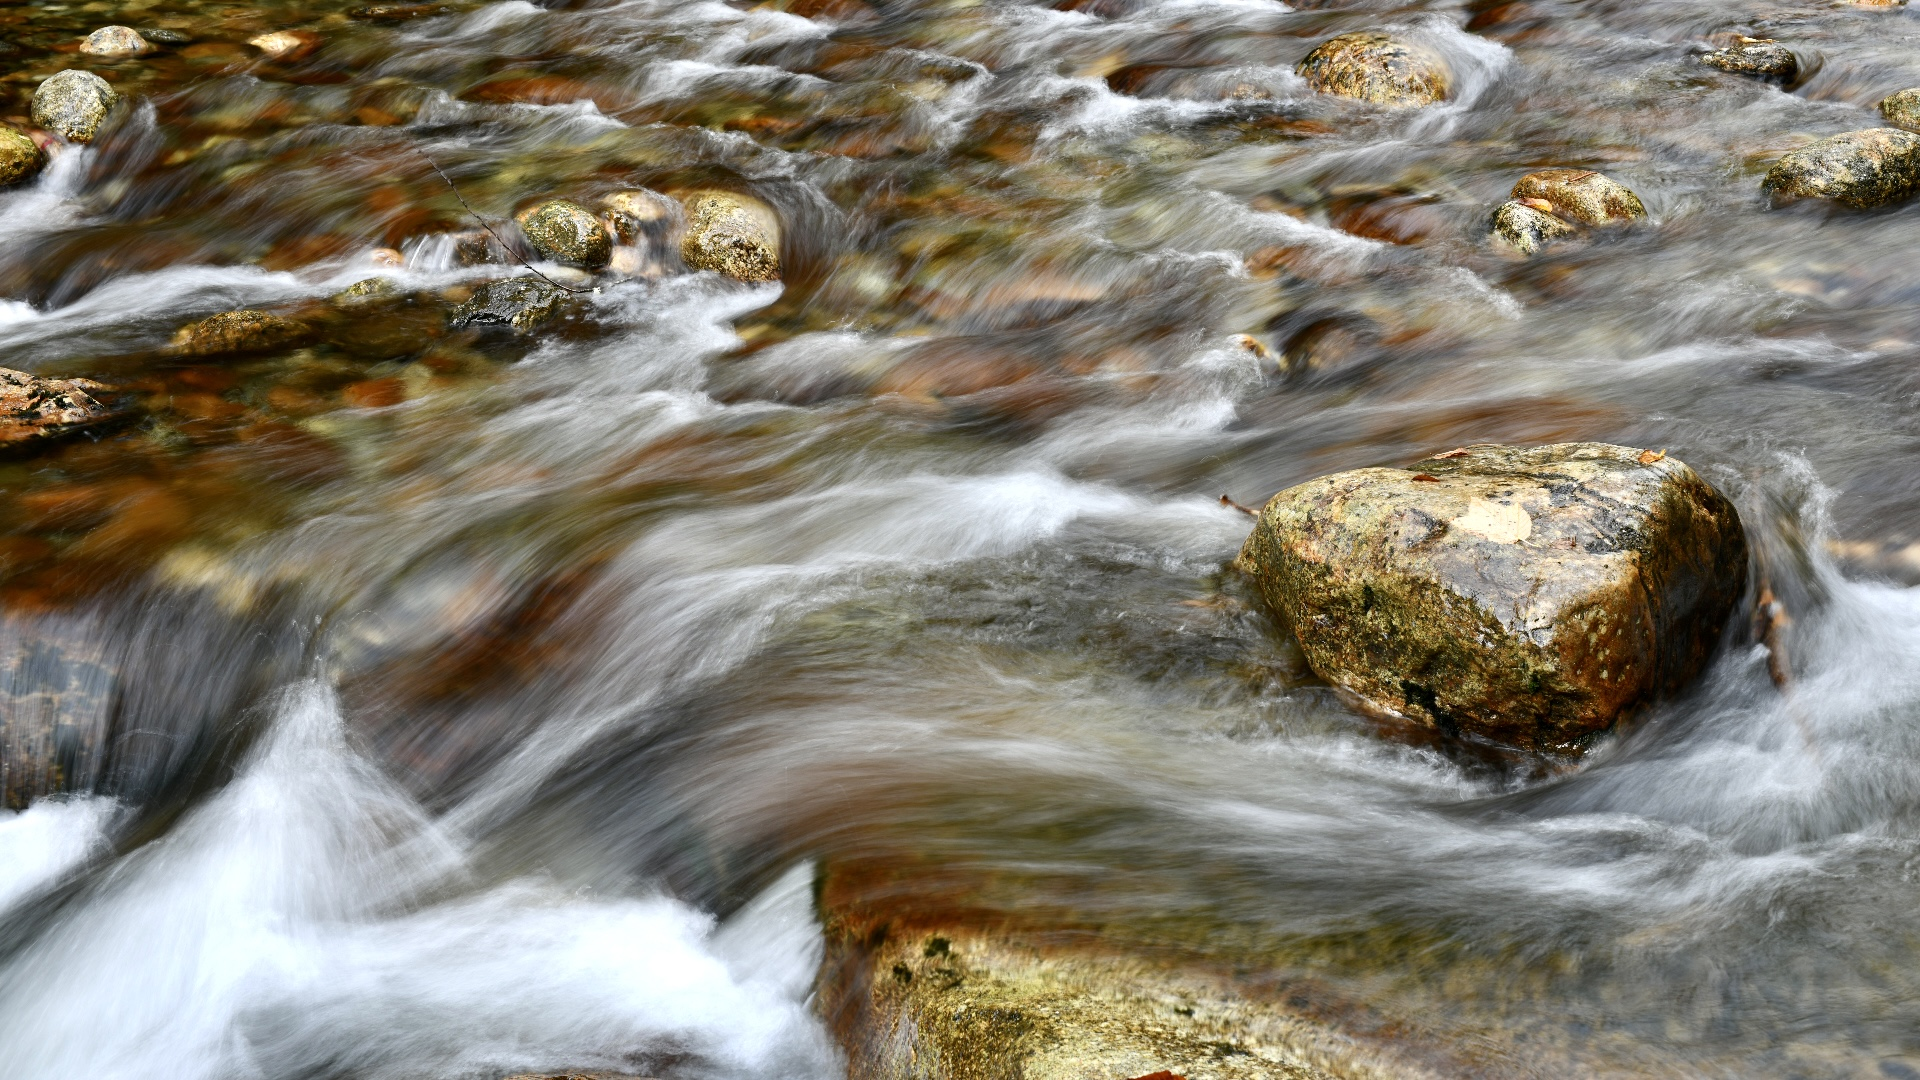 Long exposure of blurred water flowing over river rocks. 2021. Taryn Okesson. Digital Photography. White Mountain National Forest, New Hampshire.